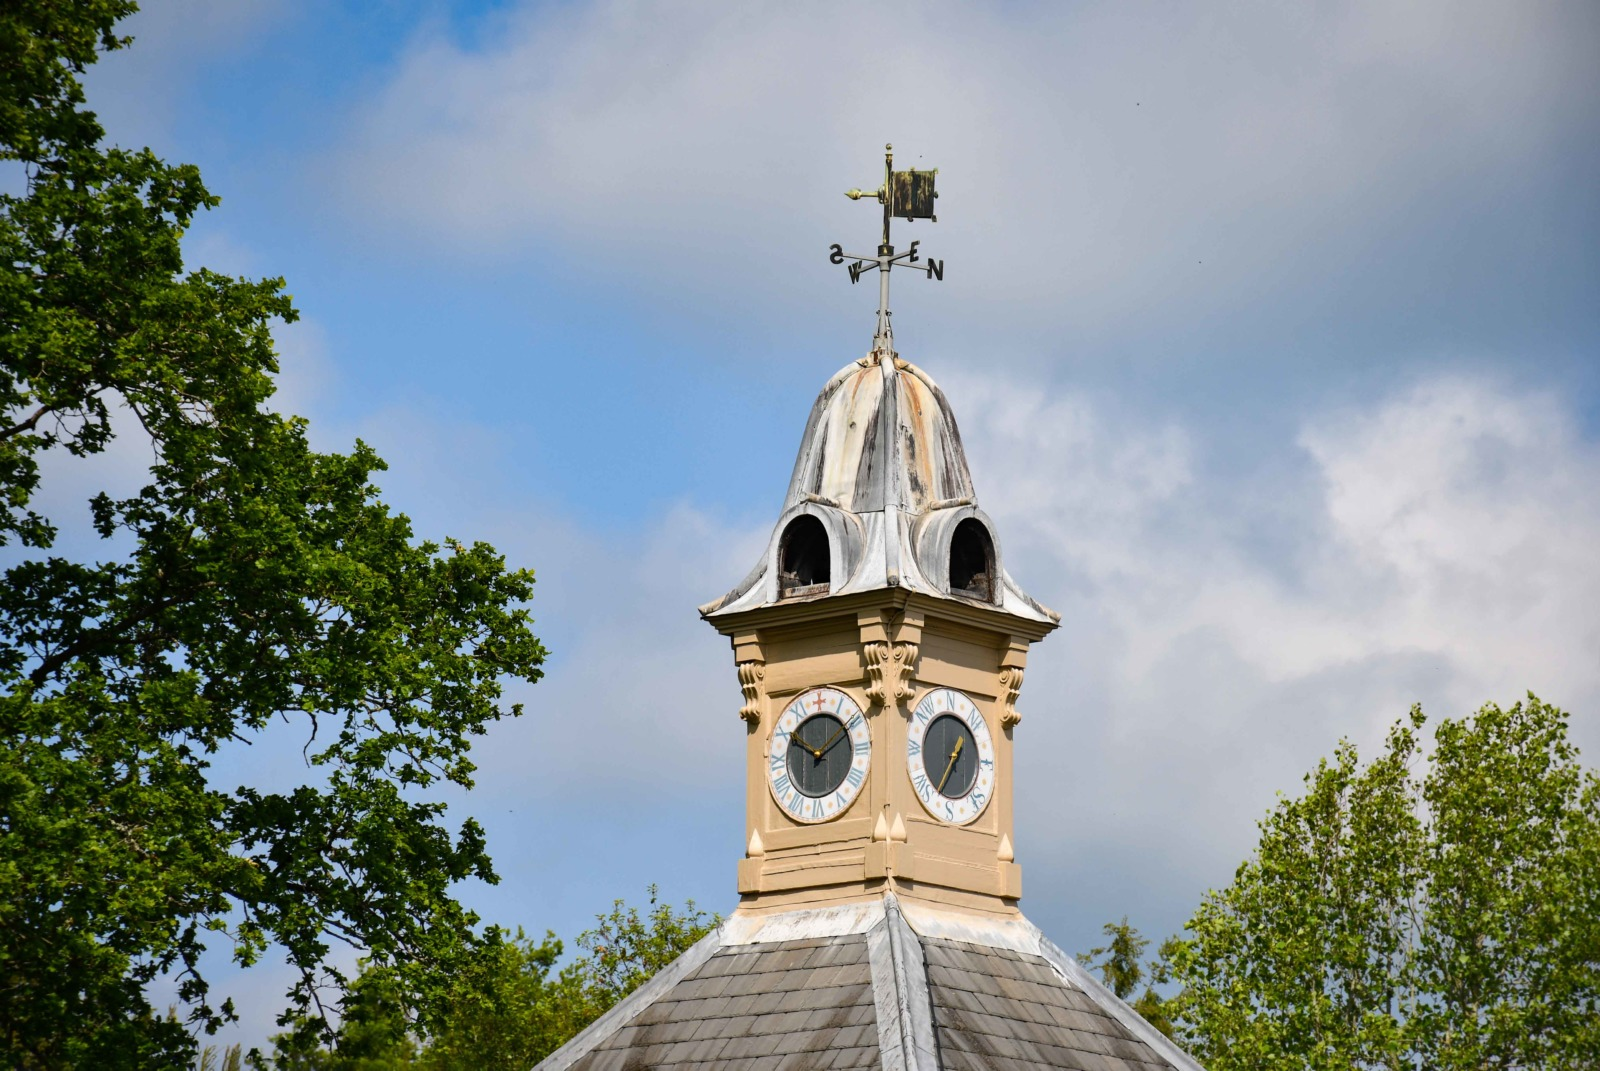 The belfry of Scotney House © French Moments